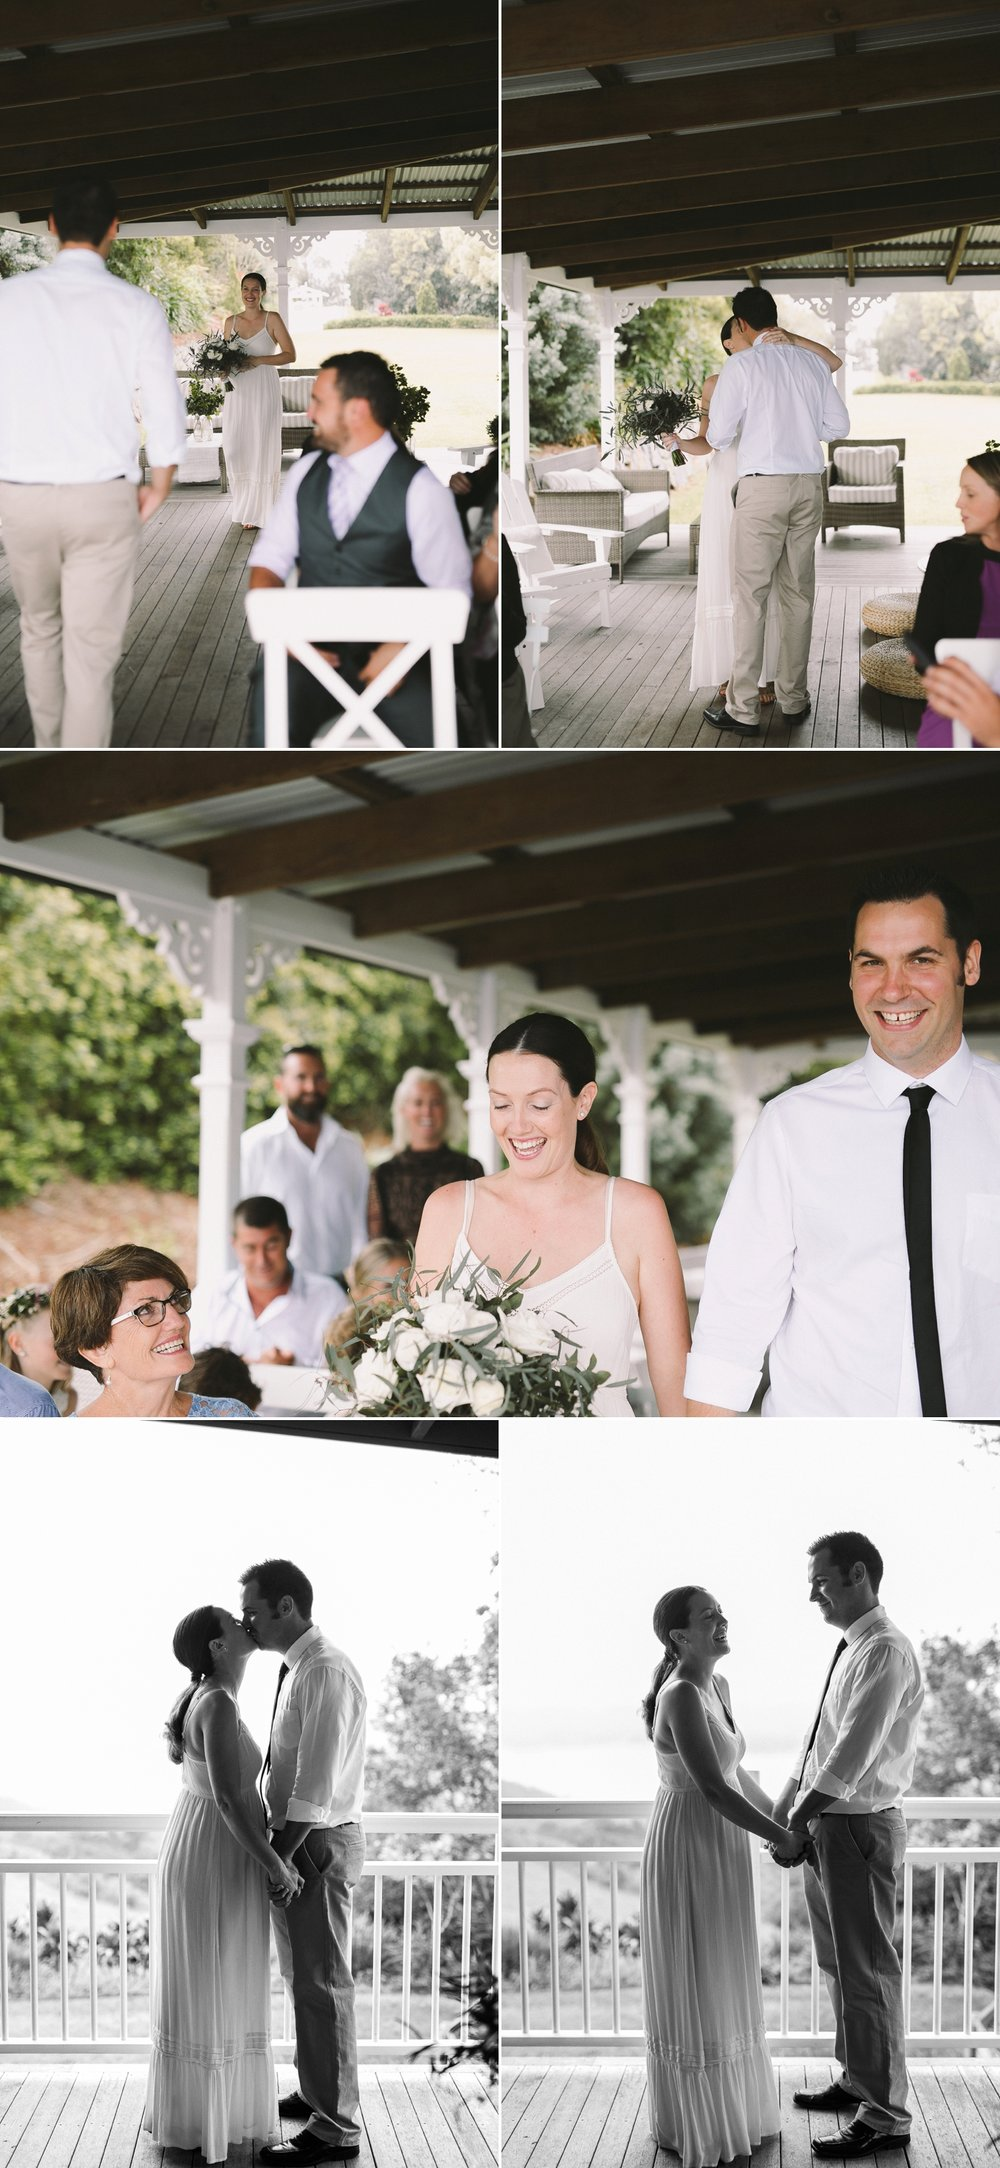 Deanna & Matt - Sunshine Coast Wedding Photographer - Adelaide wedding photographer - Lake Terrace, Montville - www.katherineschultzphotography.com 8